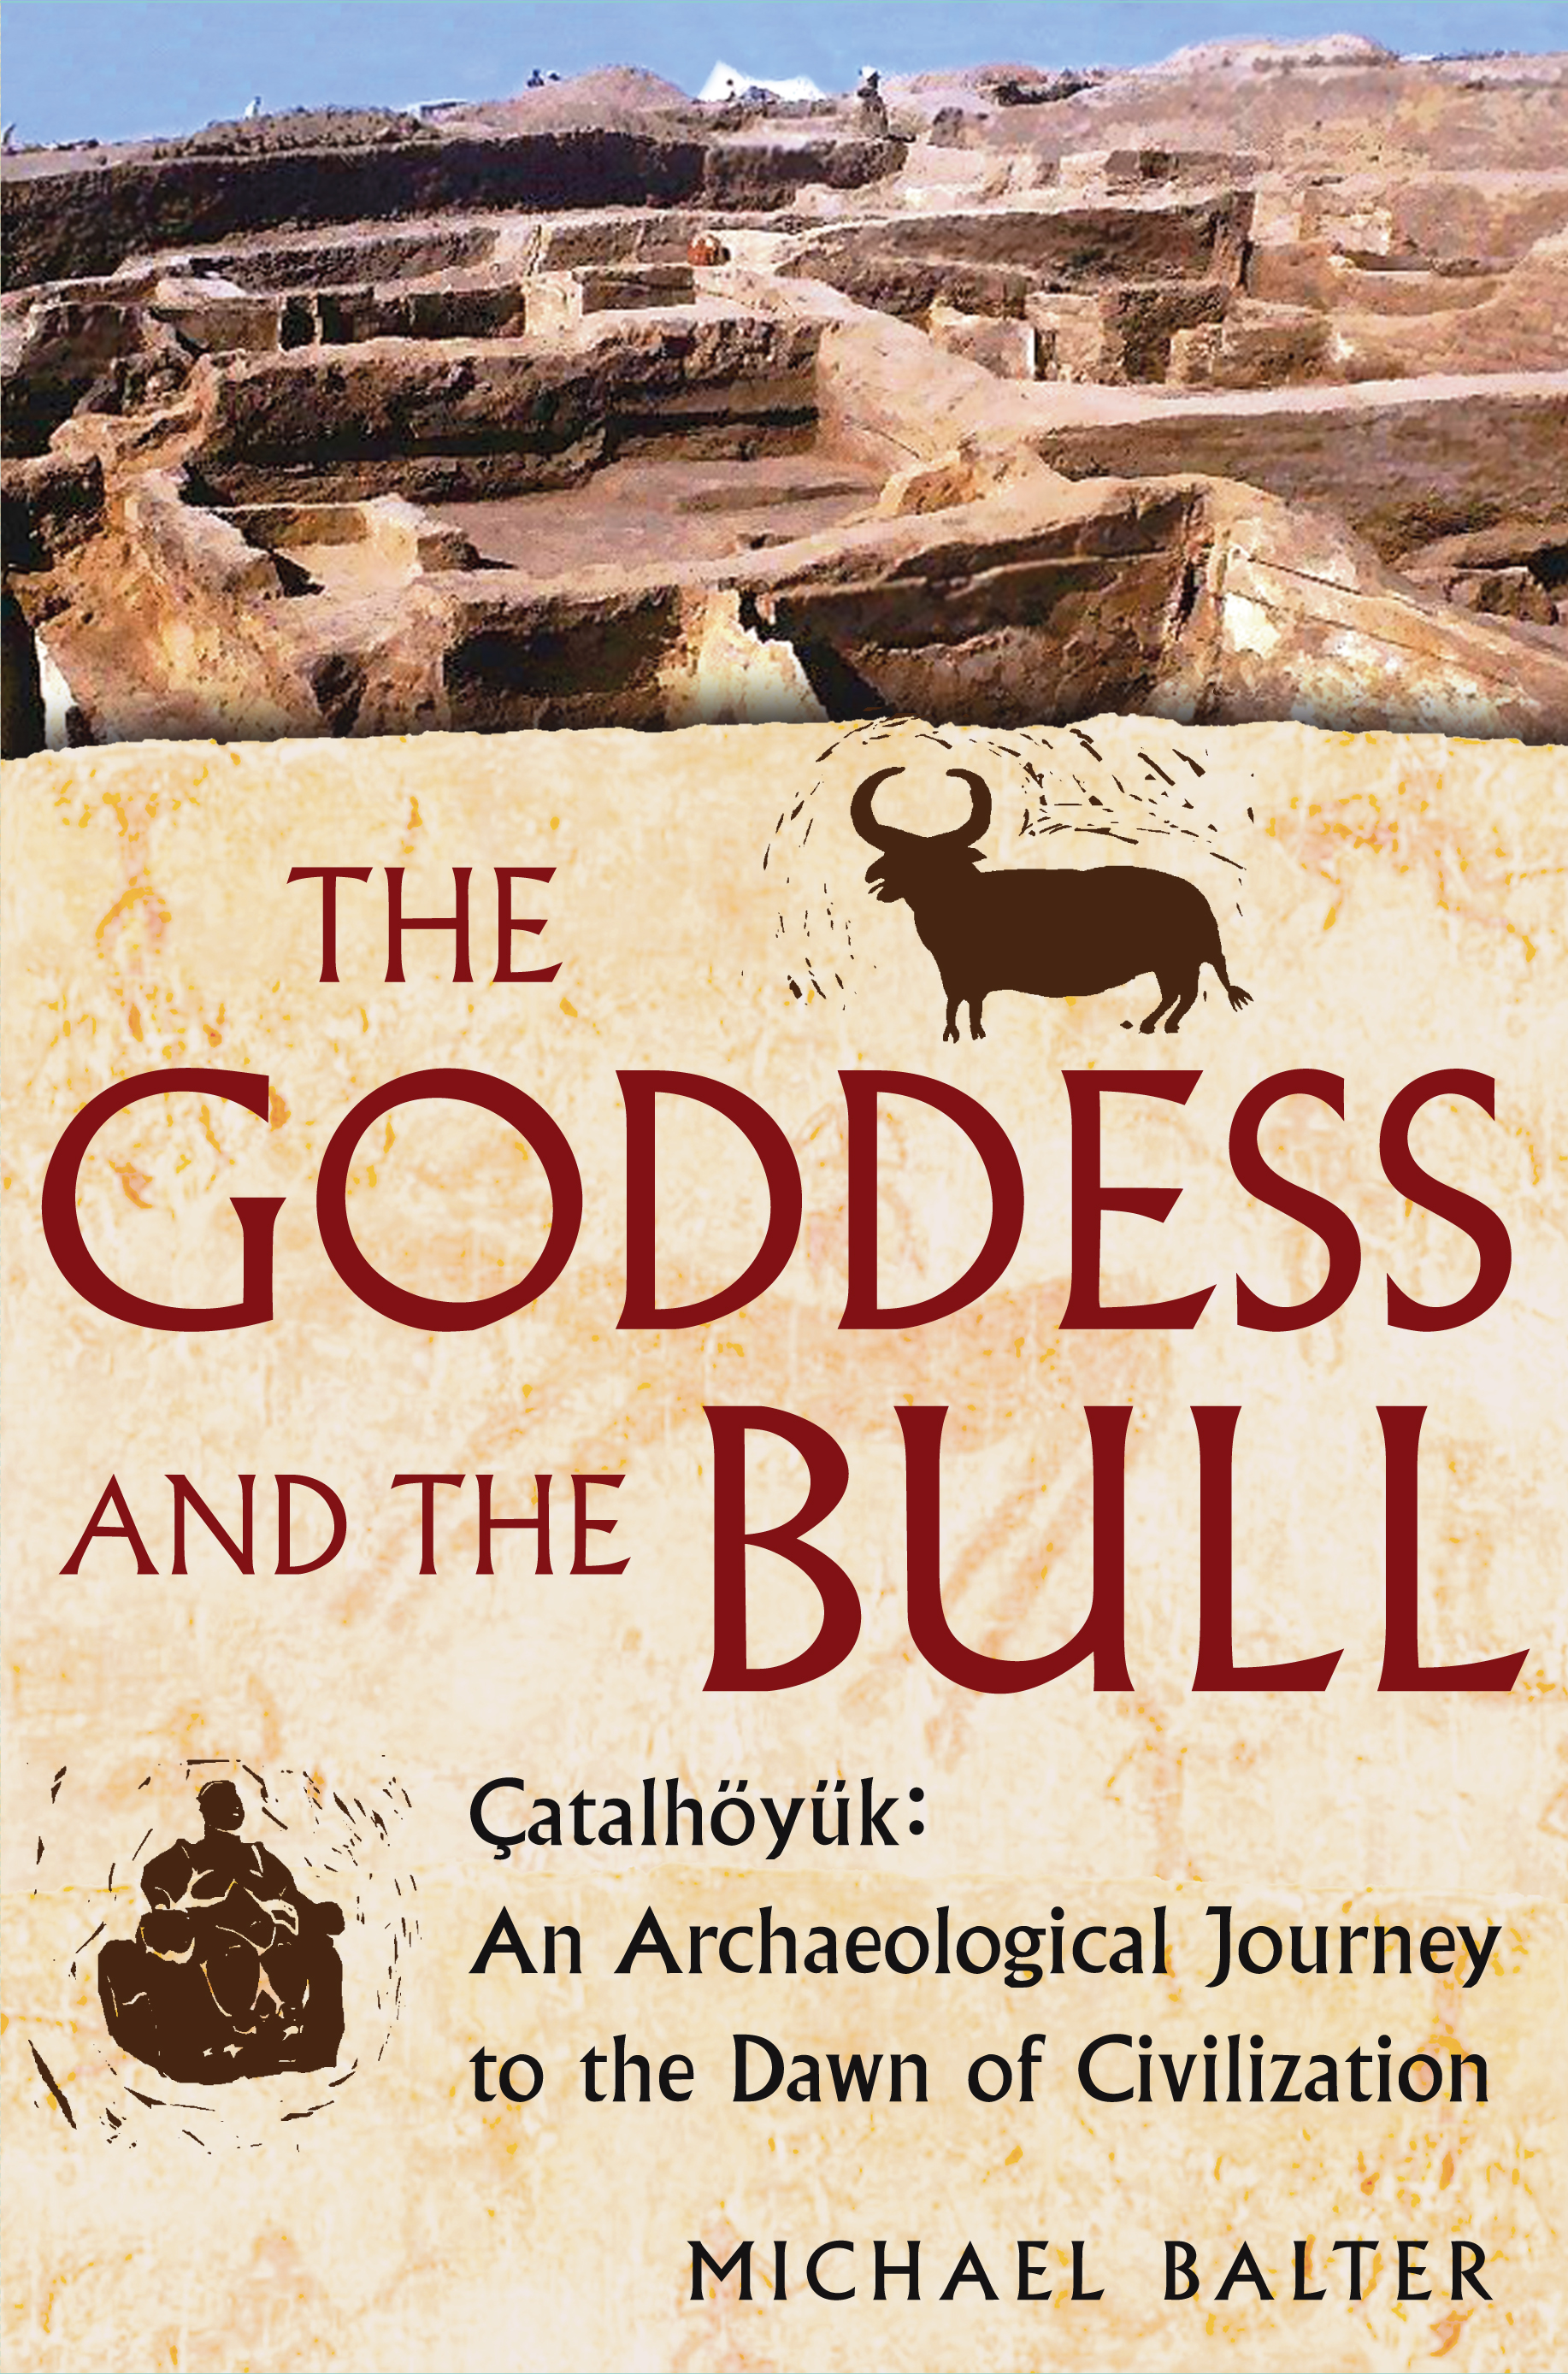 The goddess and the bull ebook by michael balter official cvr9781451603781 9781451603781 hr fandeluxe Images